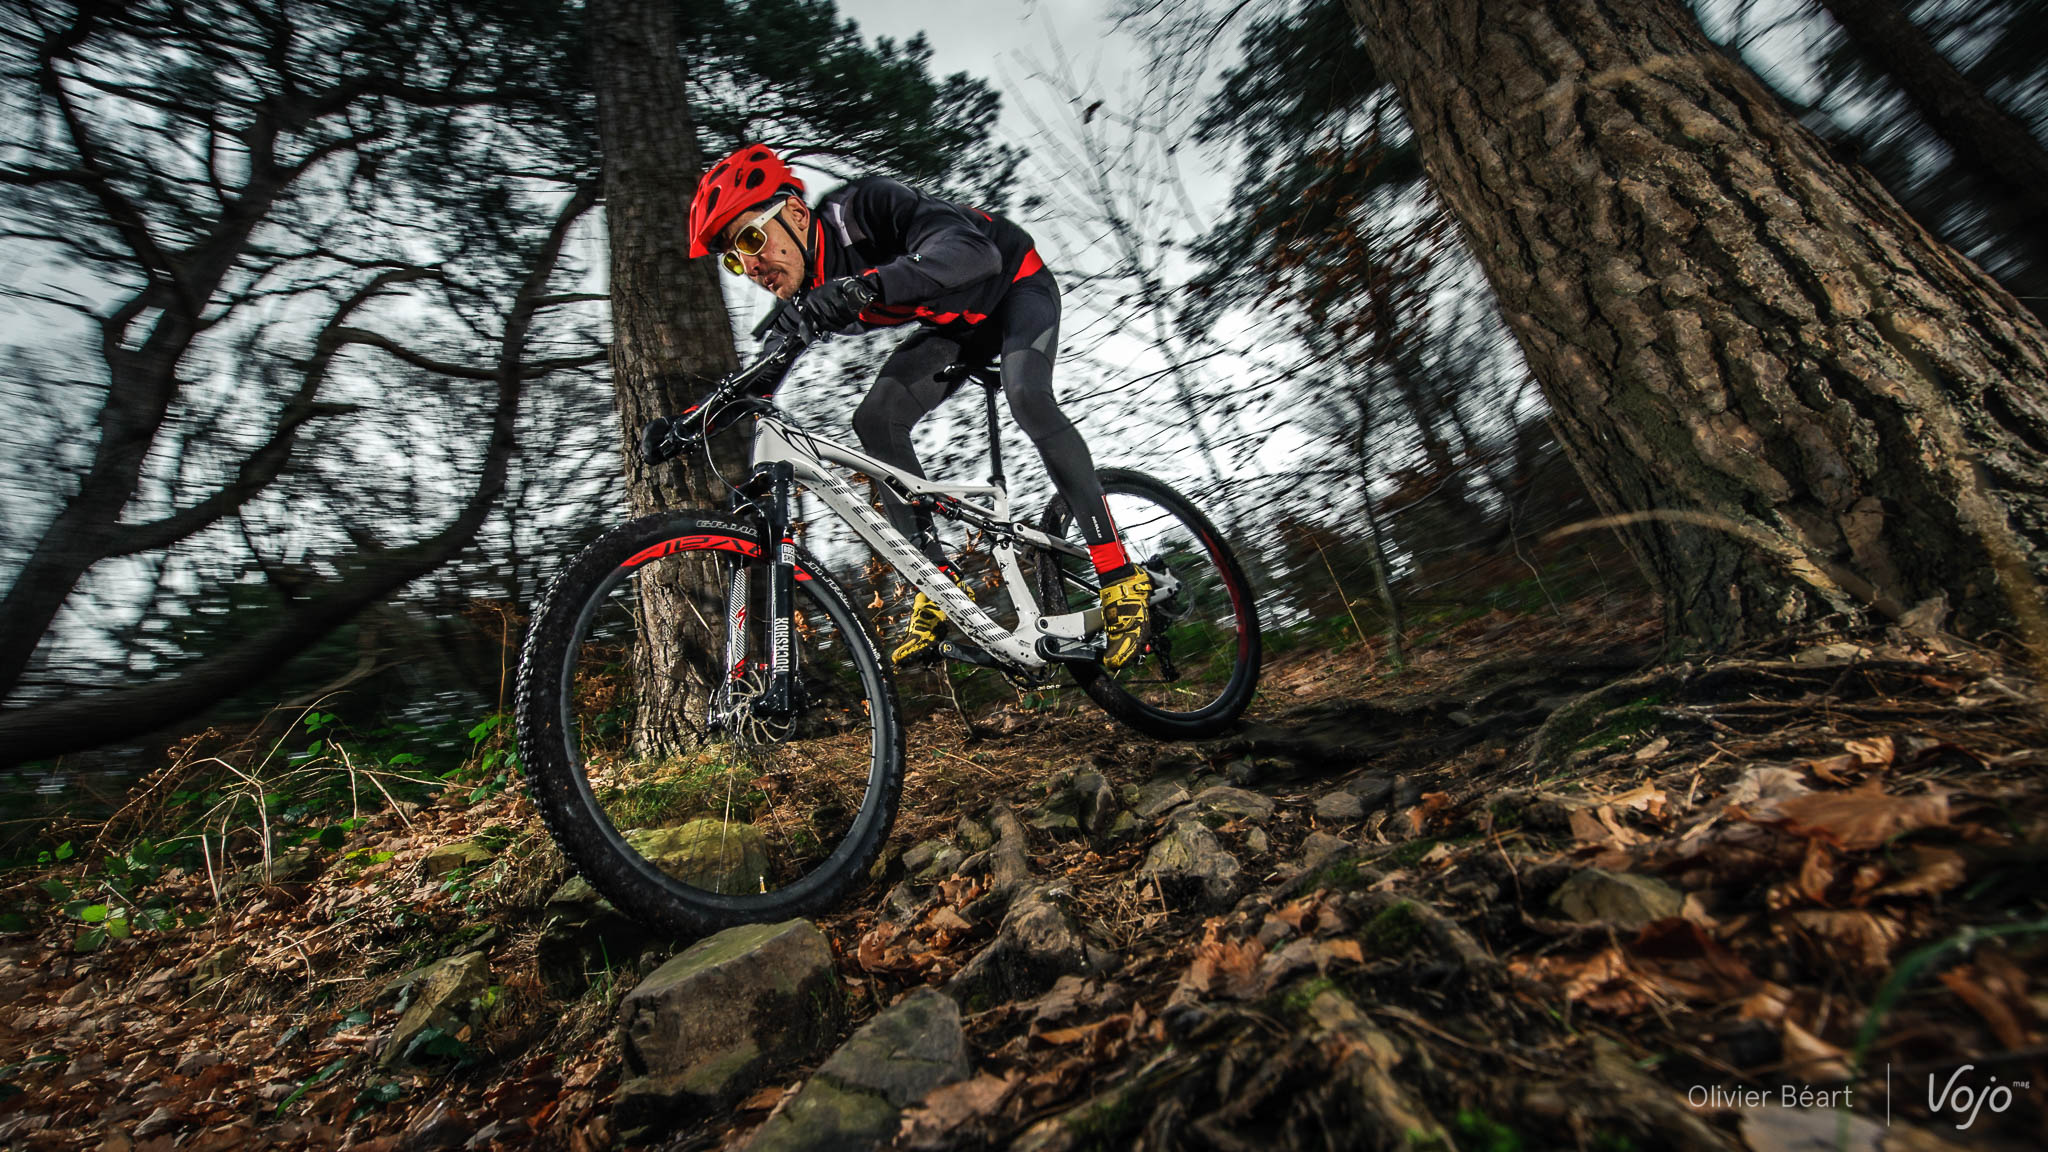 Specialized_Epic_Expert_WorldCup_Copyright_OBeart_VojoMag-11